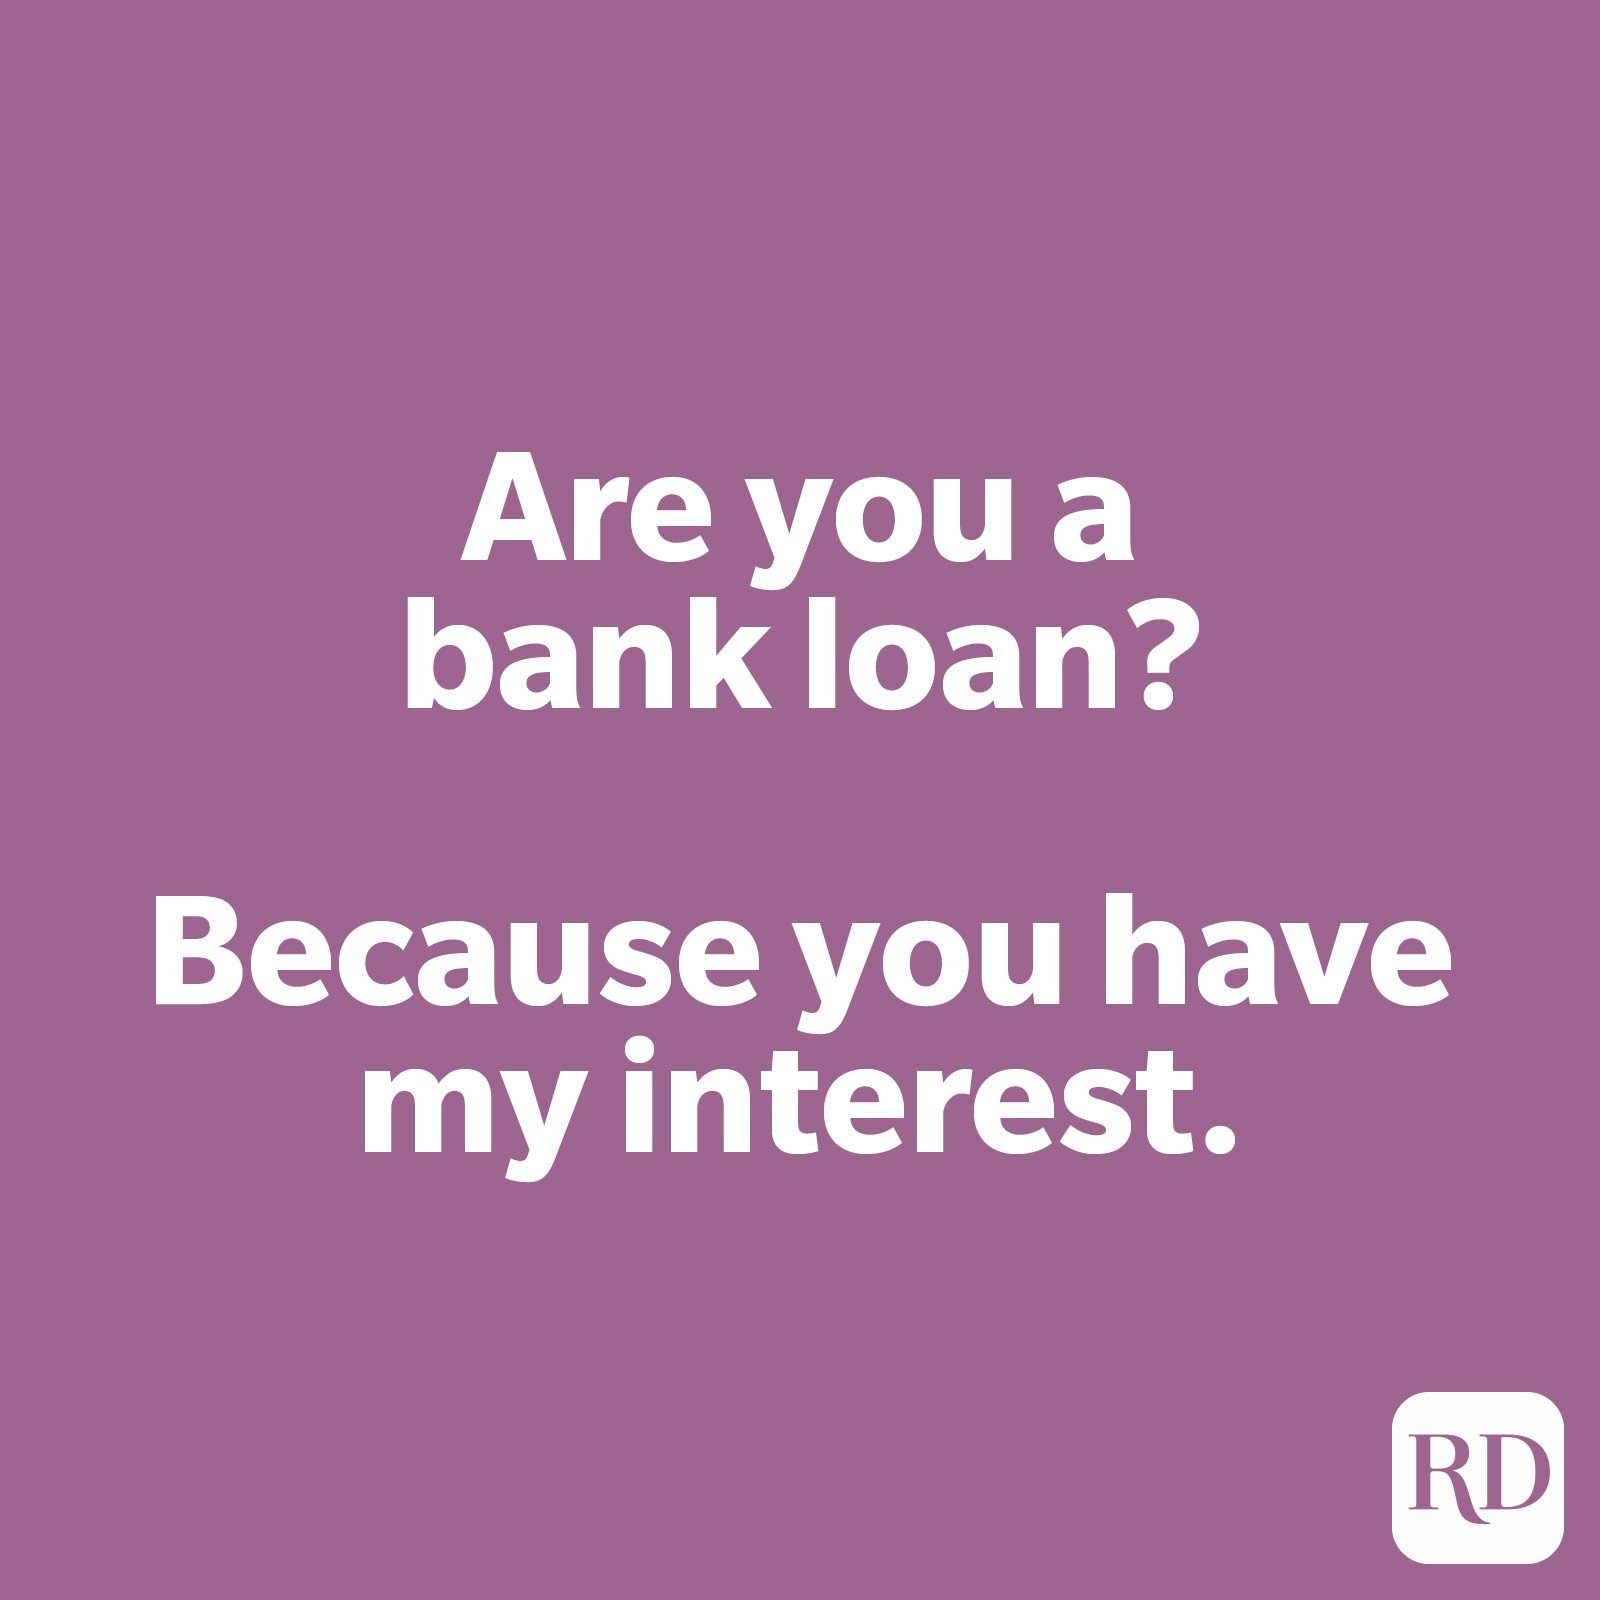 Are you a bank loan? Because you have my interest.